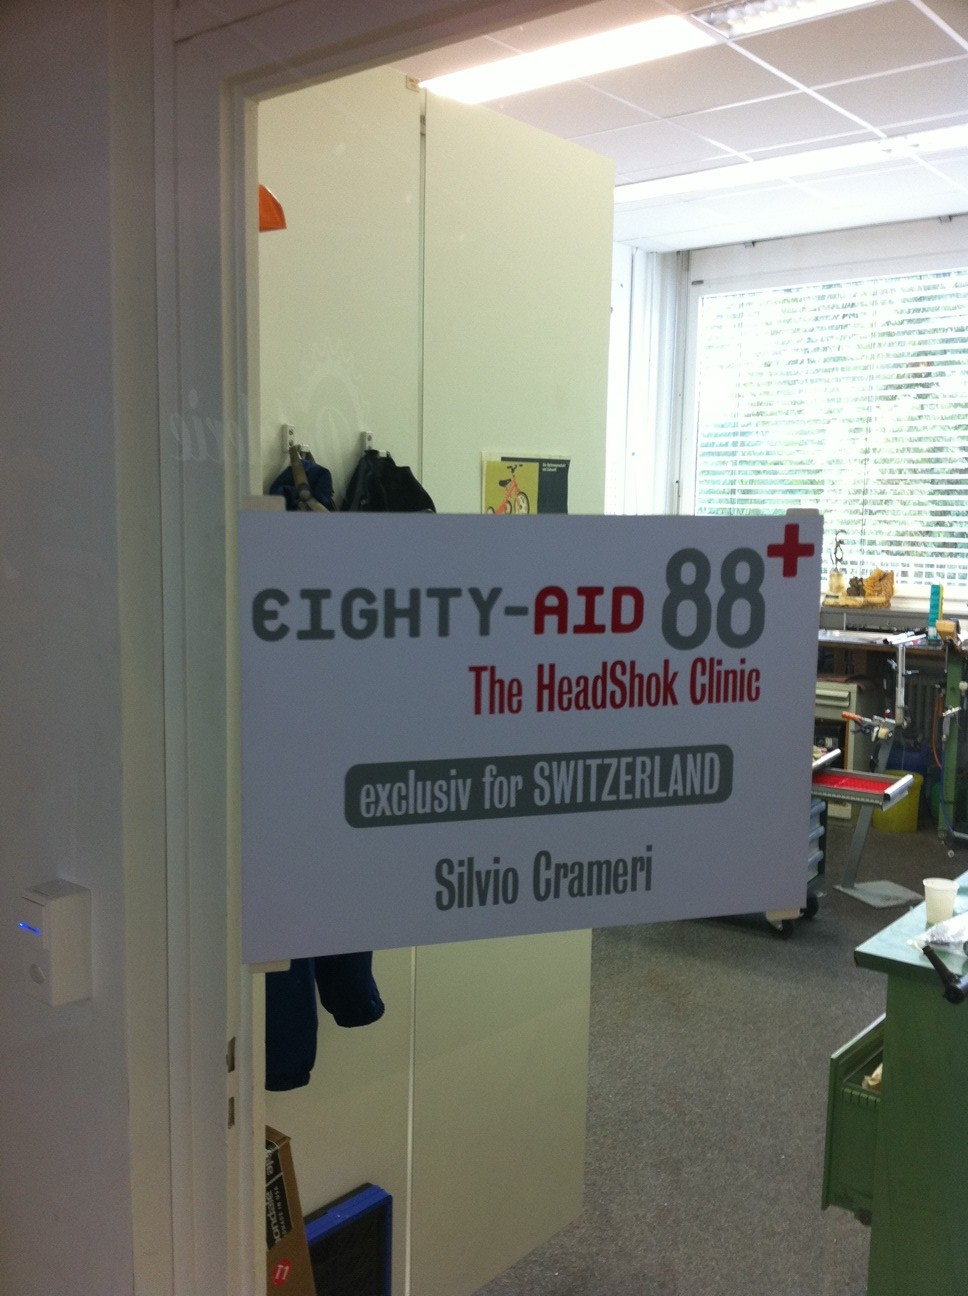 A visit to Eighty-Aid in Switzerland-eighty-aid.jpg